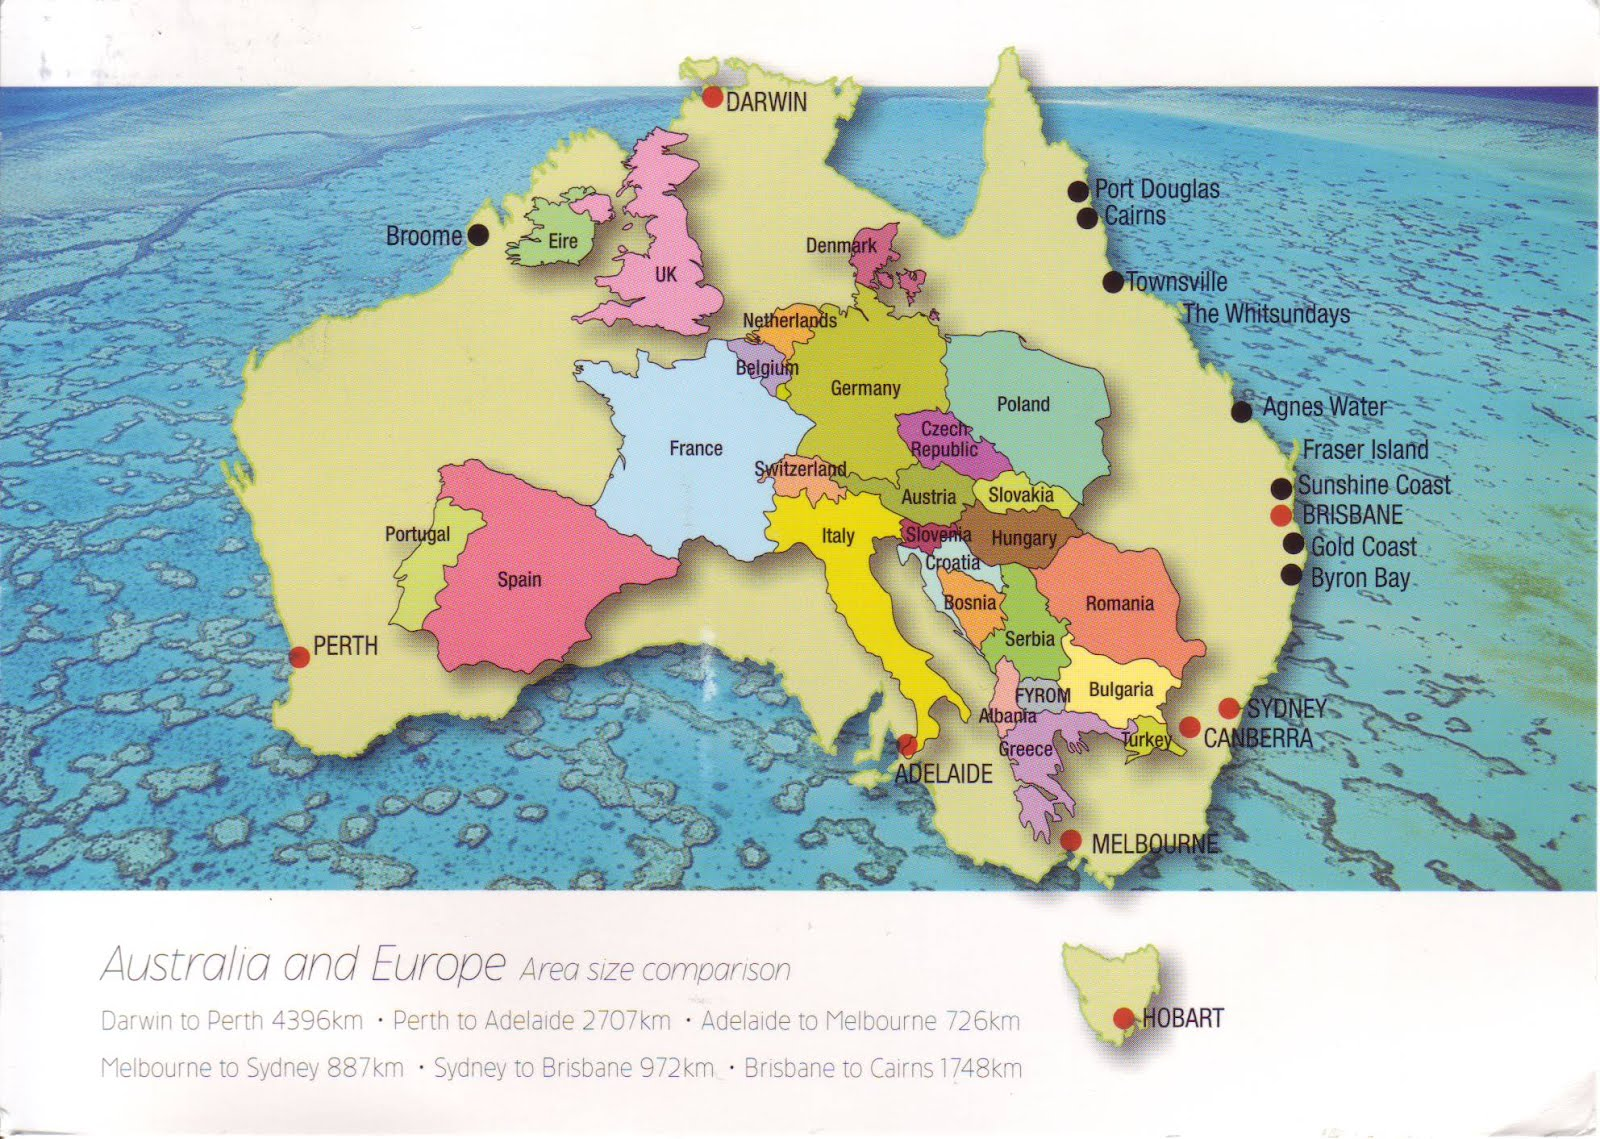 beautiful new mapcard with interesting facts of australia sent by rod eime in a private swap somehow australia always looks small on a world map but seeing